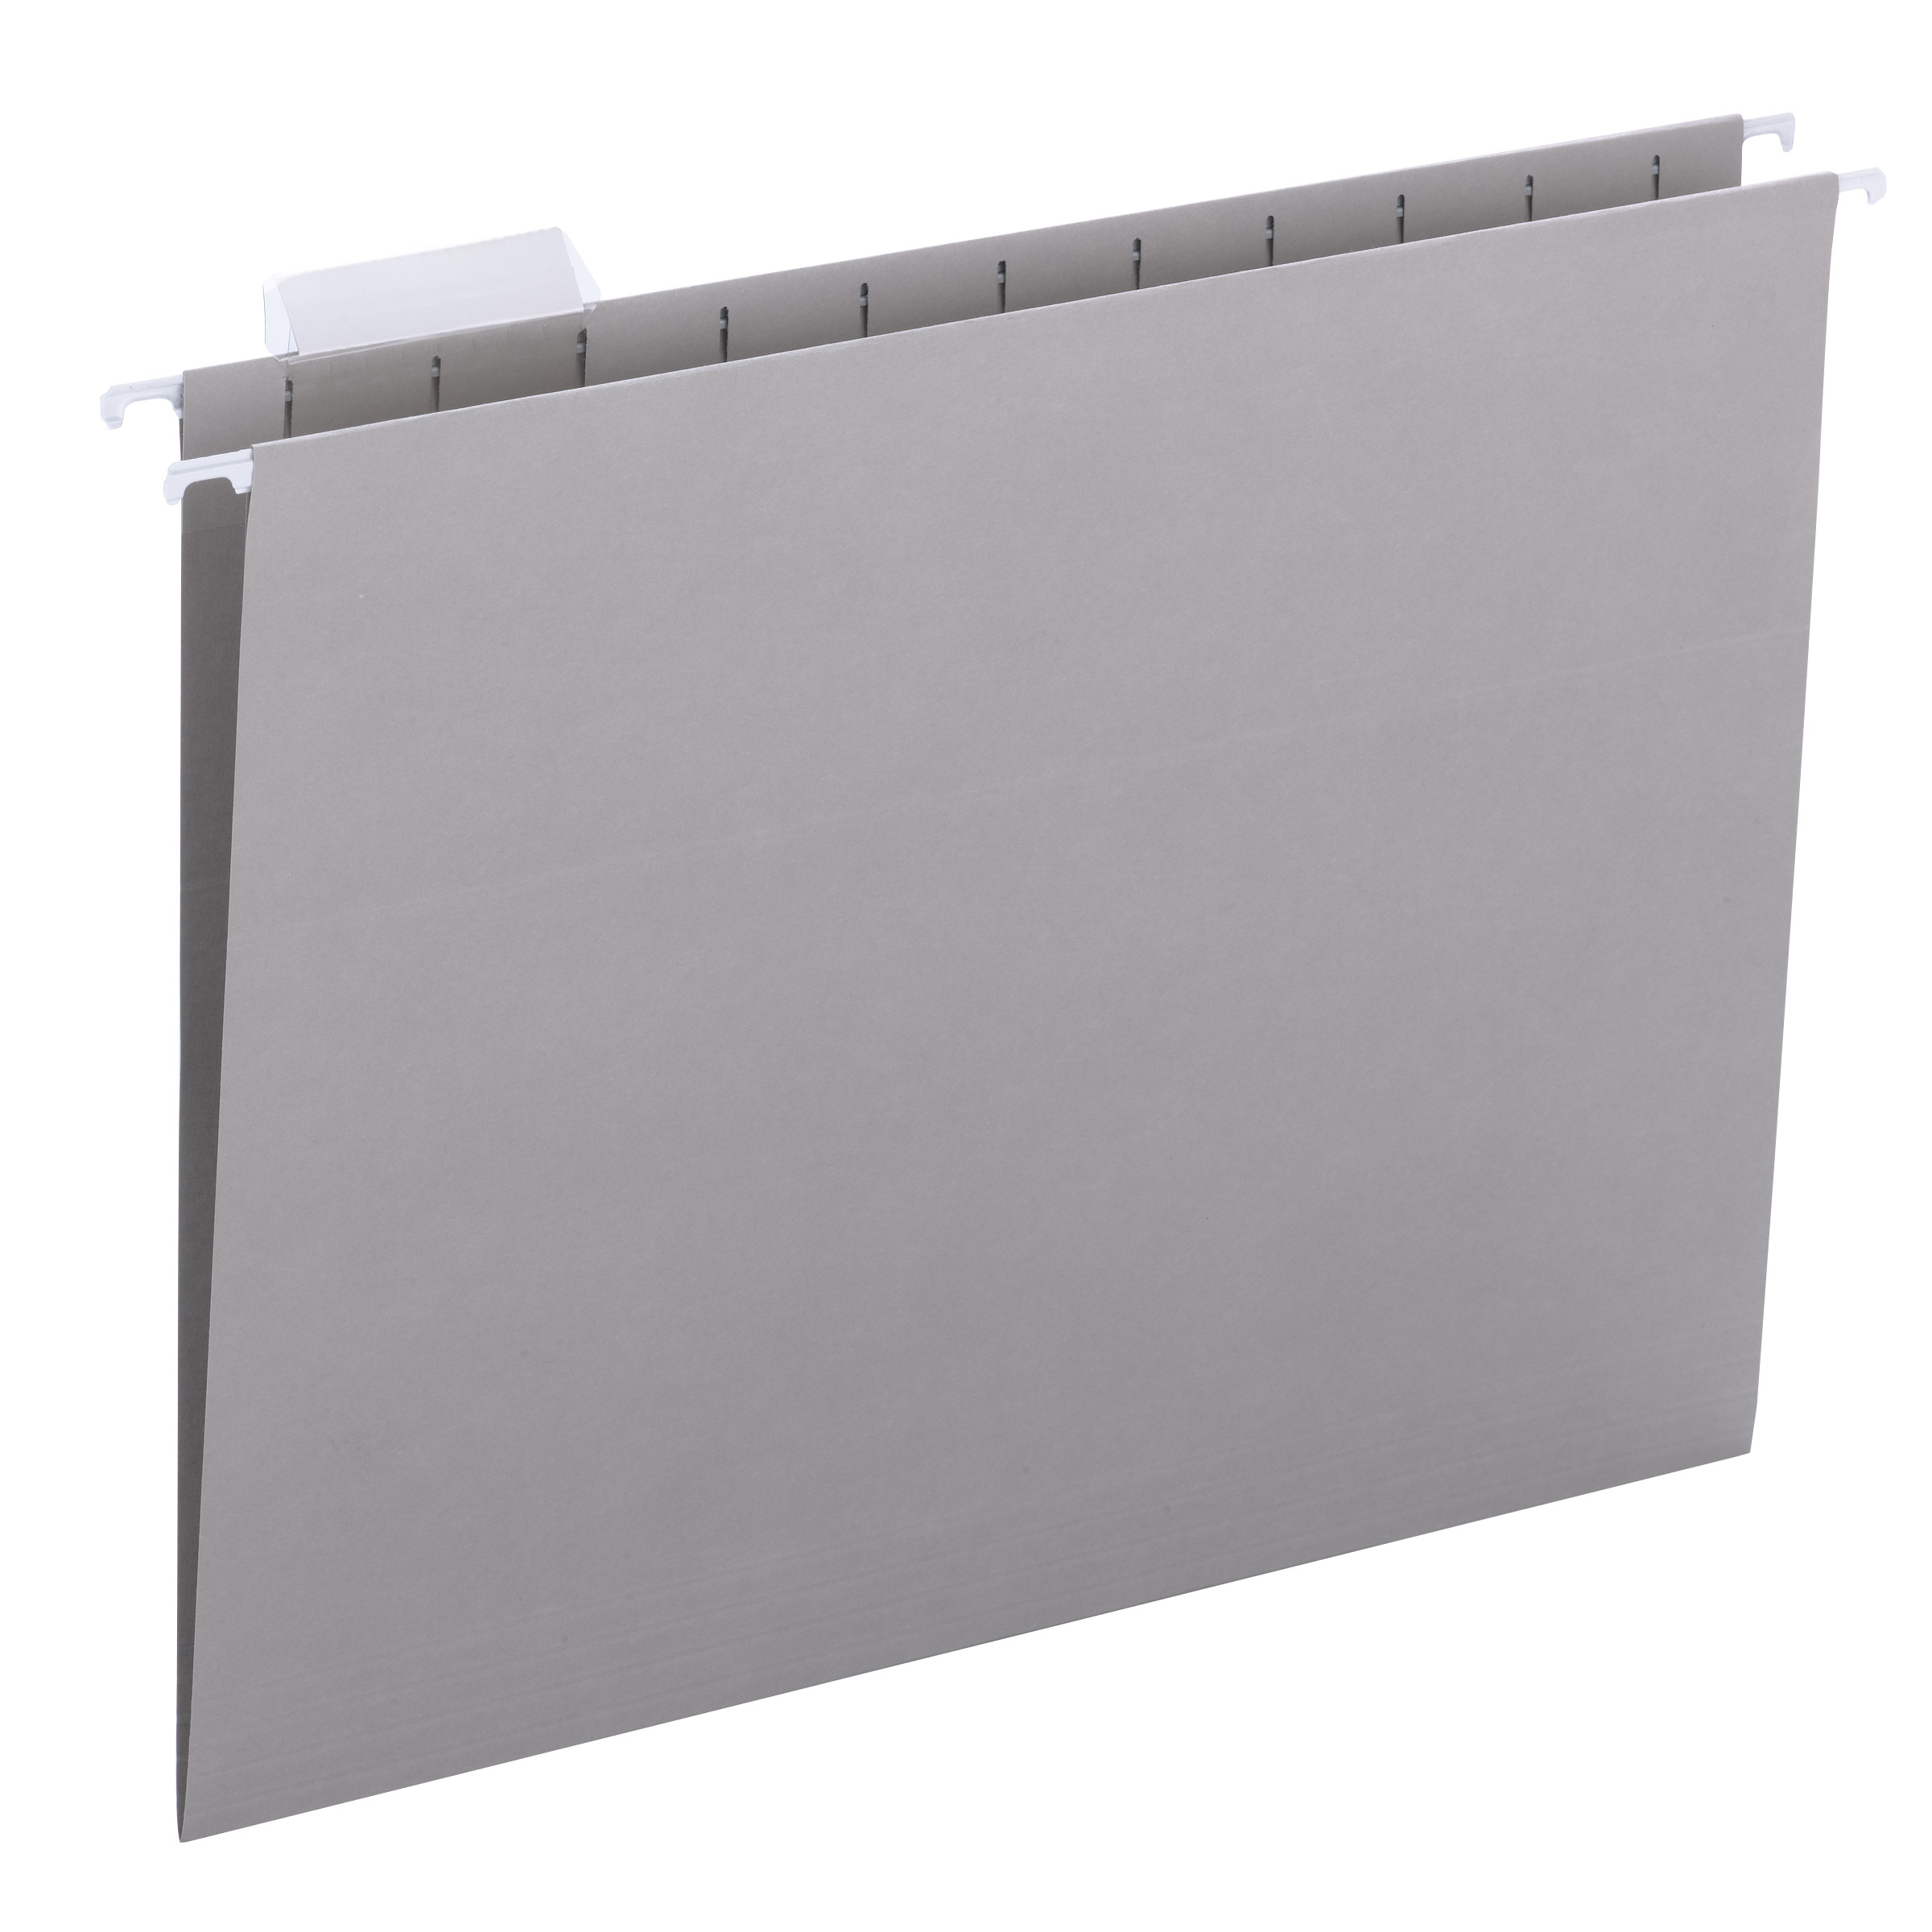 Smead Hanging File Folder with Tab, 1/5-Cut Adjustable Tab, Letter Size, Gray, 25 Count